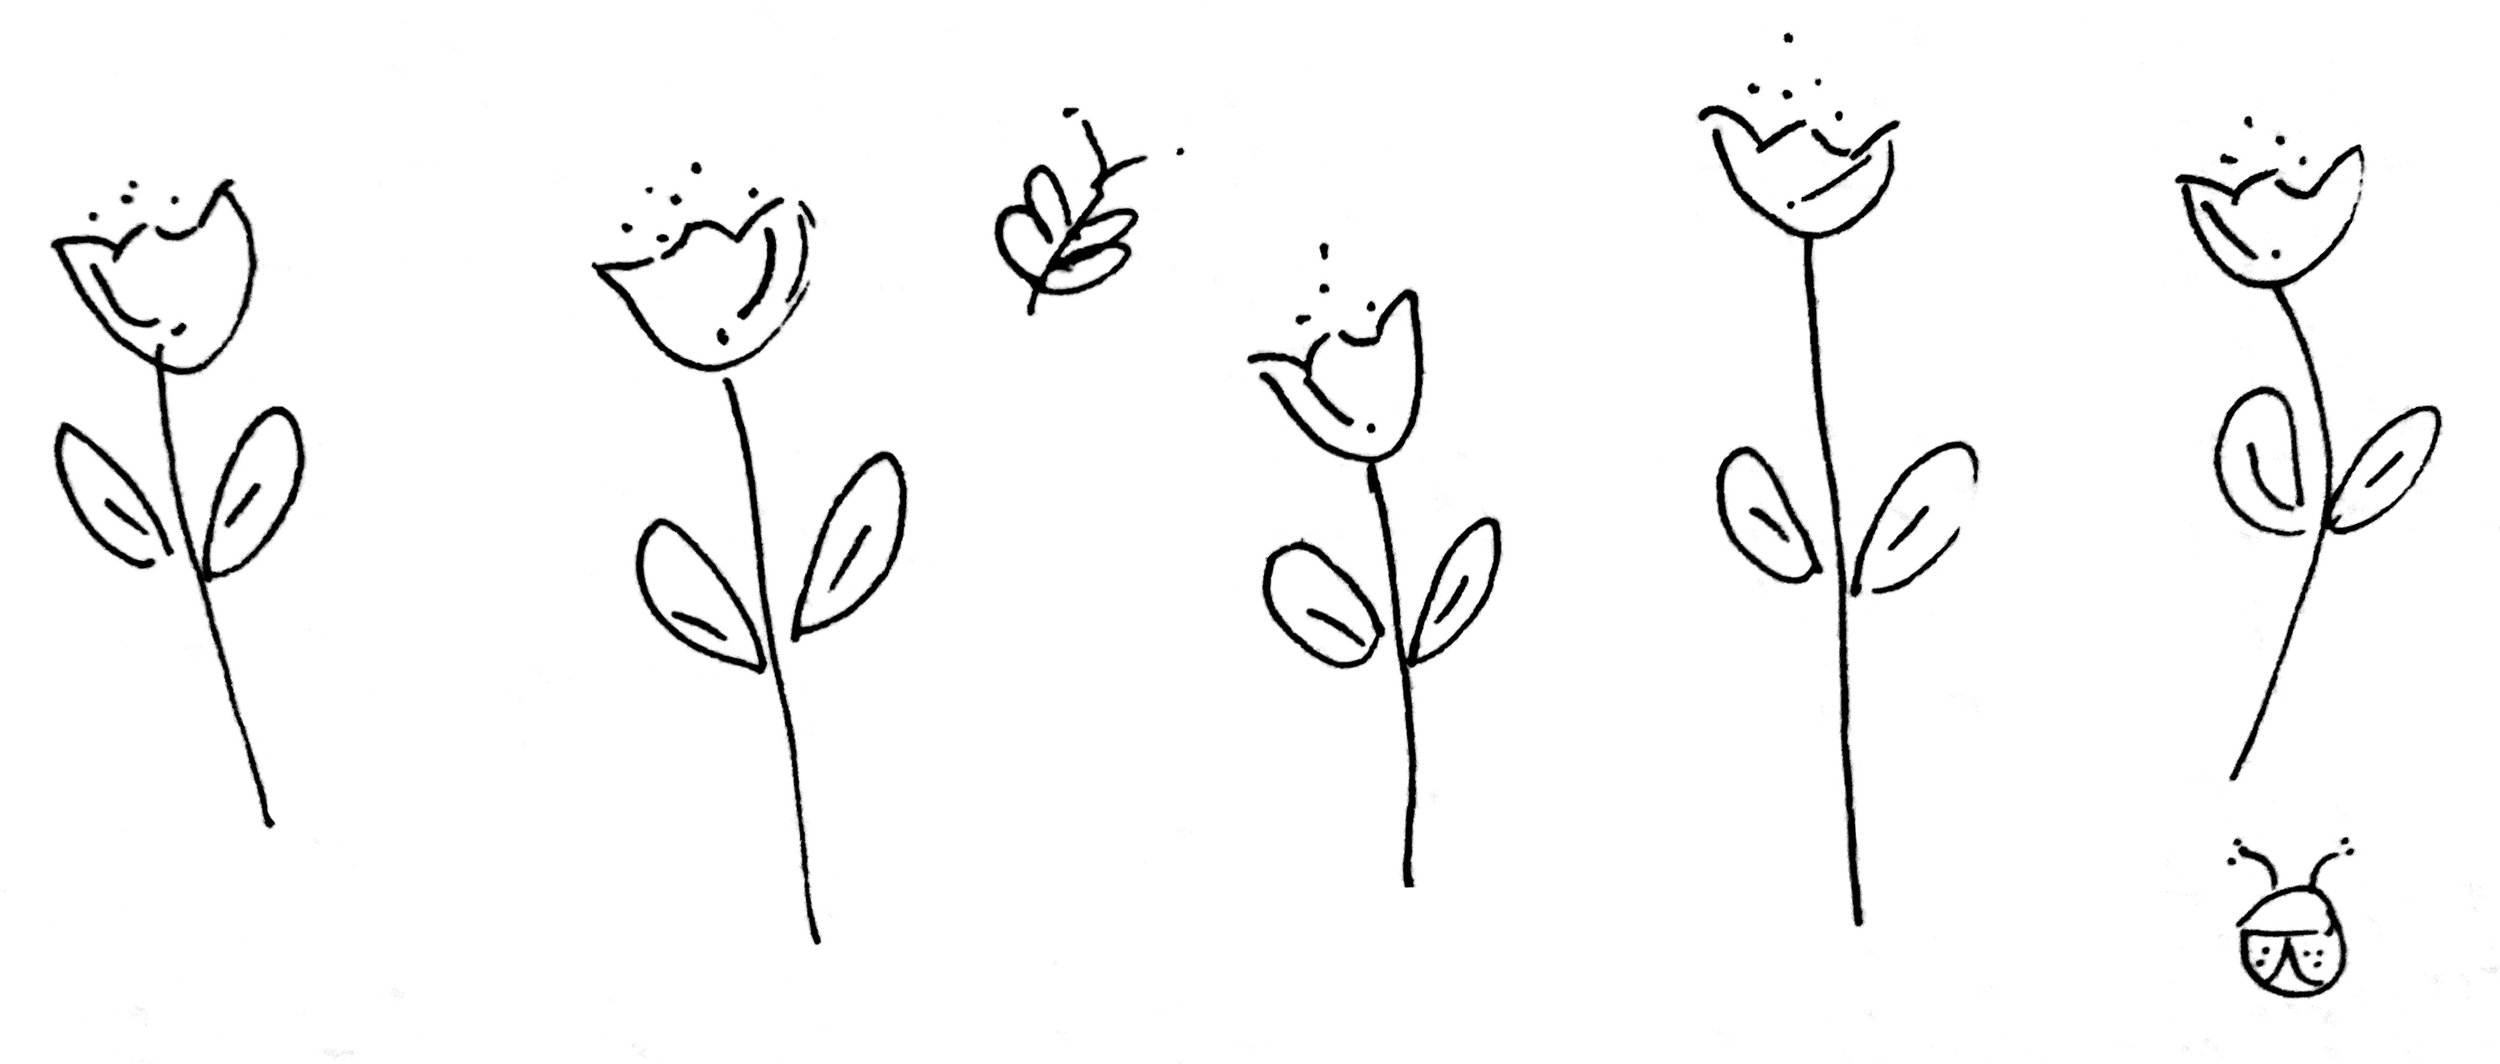 hand drawn flowers illustration black and white